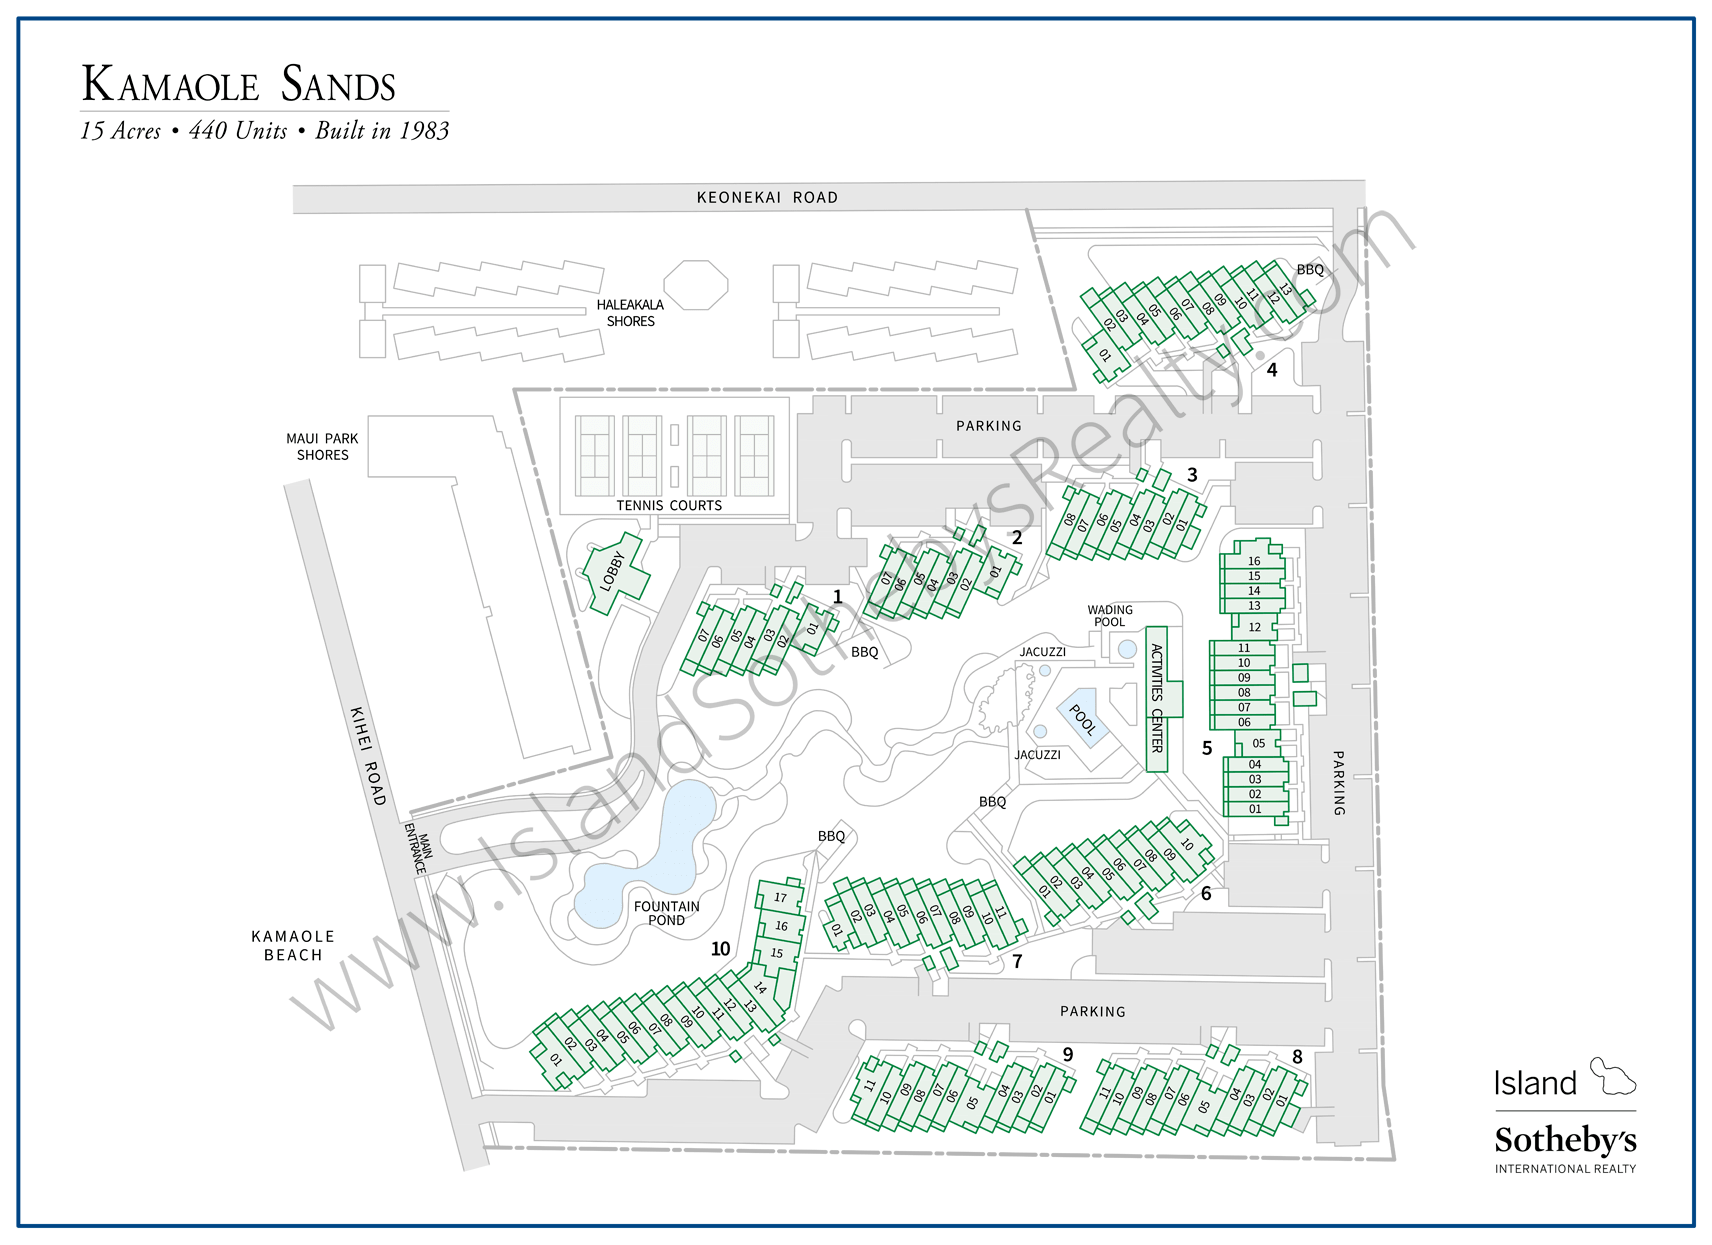 Map of Kamaole Sands Condominium Maui